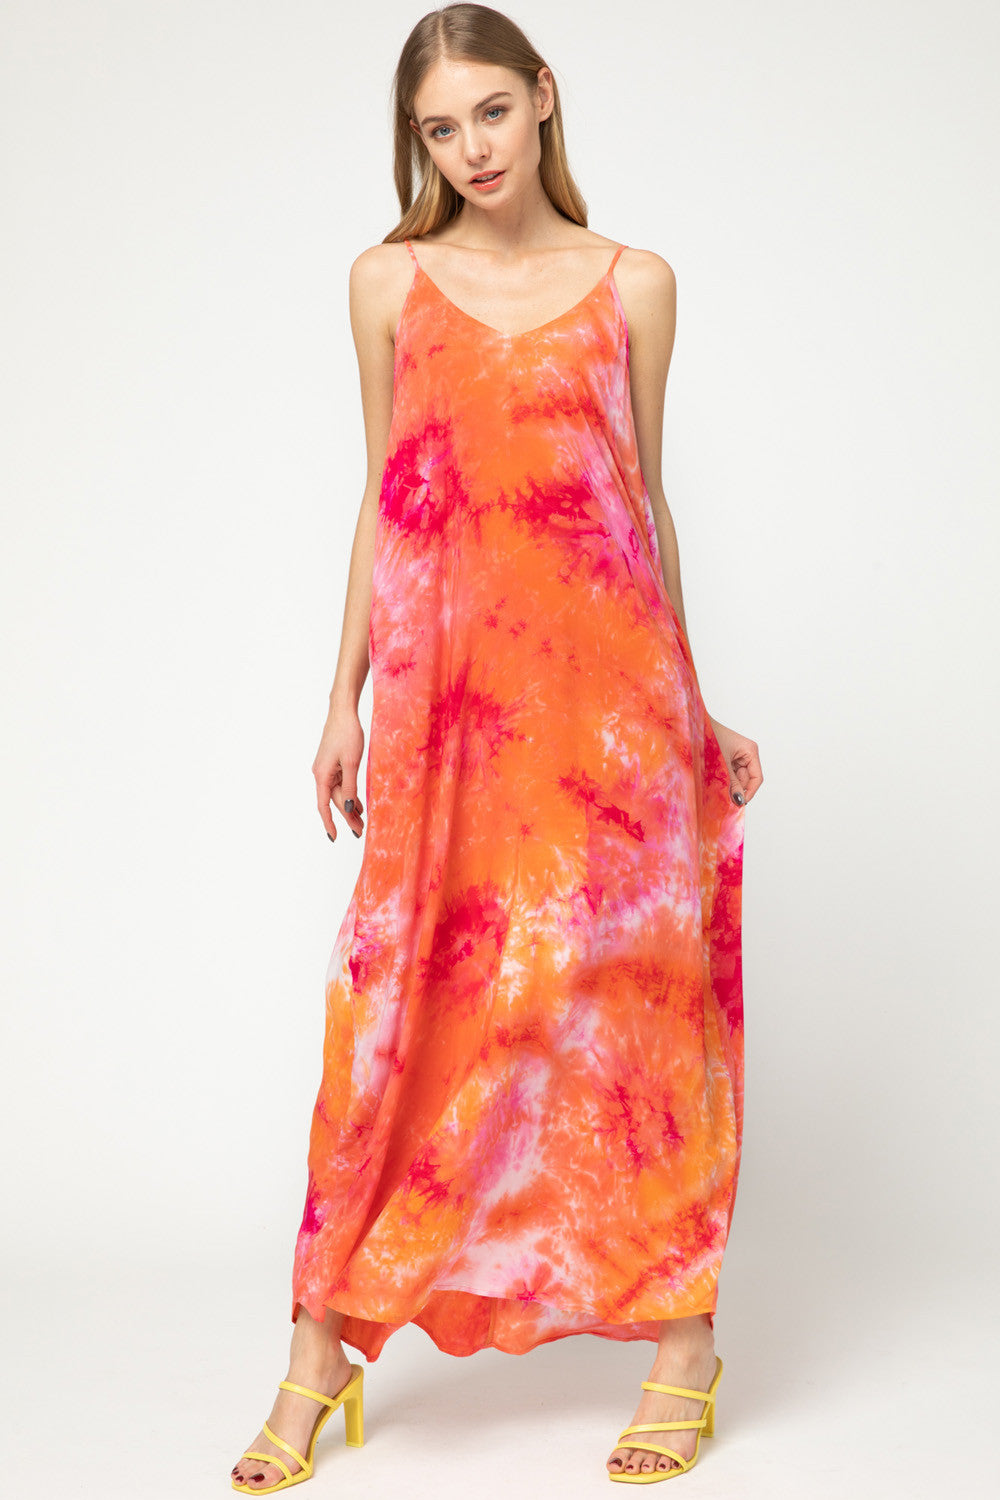 fab'rik - PreOrder Tampa Tie Dye Maxi Dress ProductImage-14021429231674